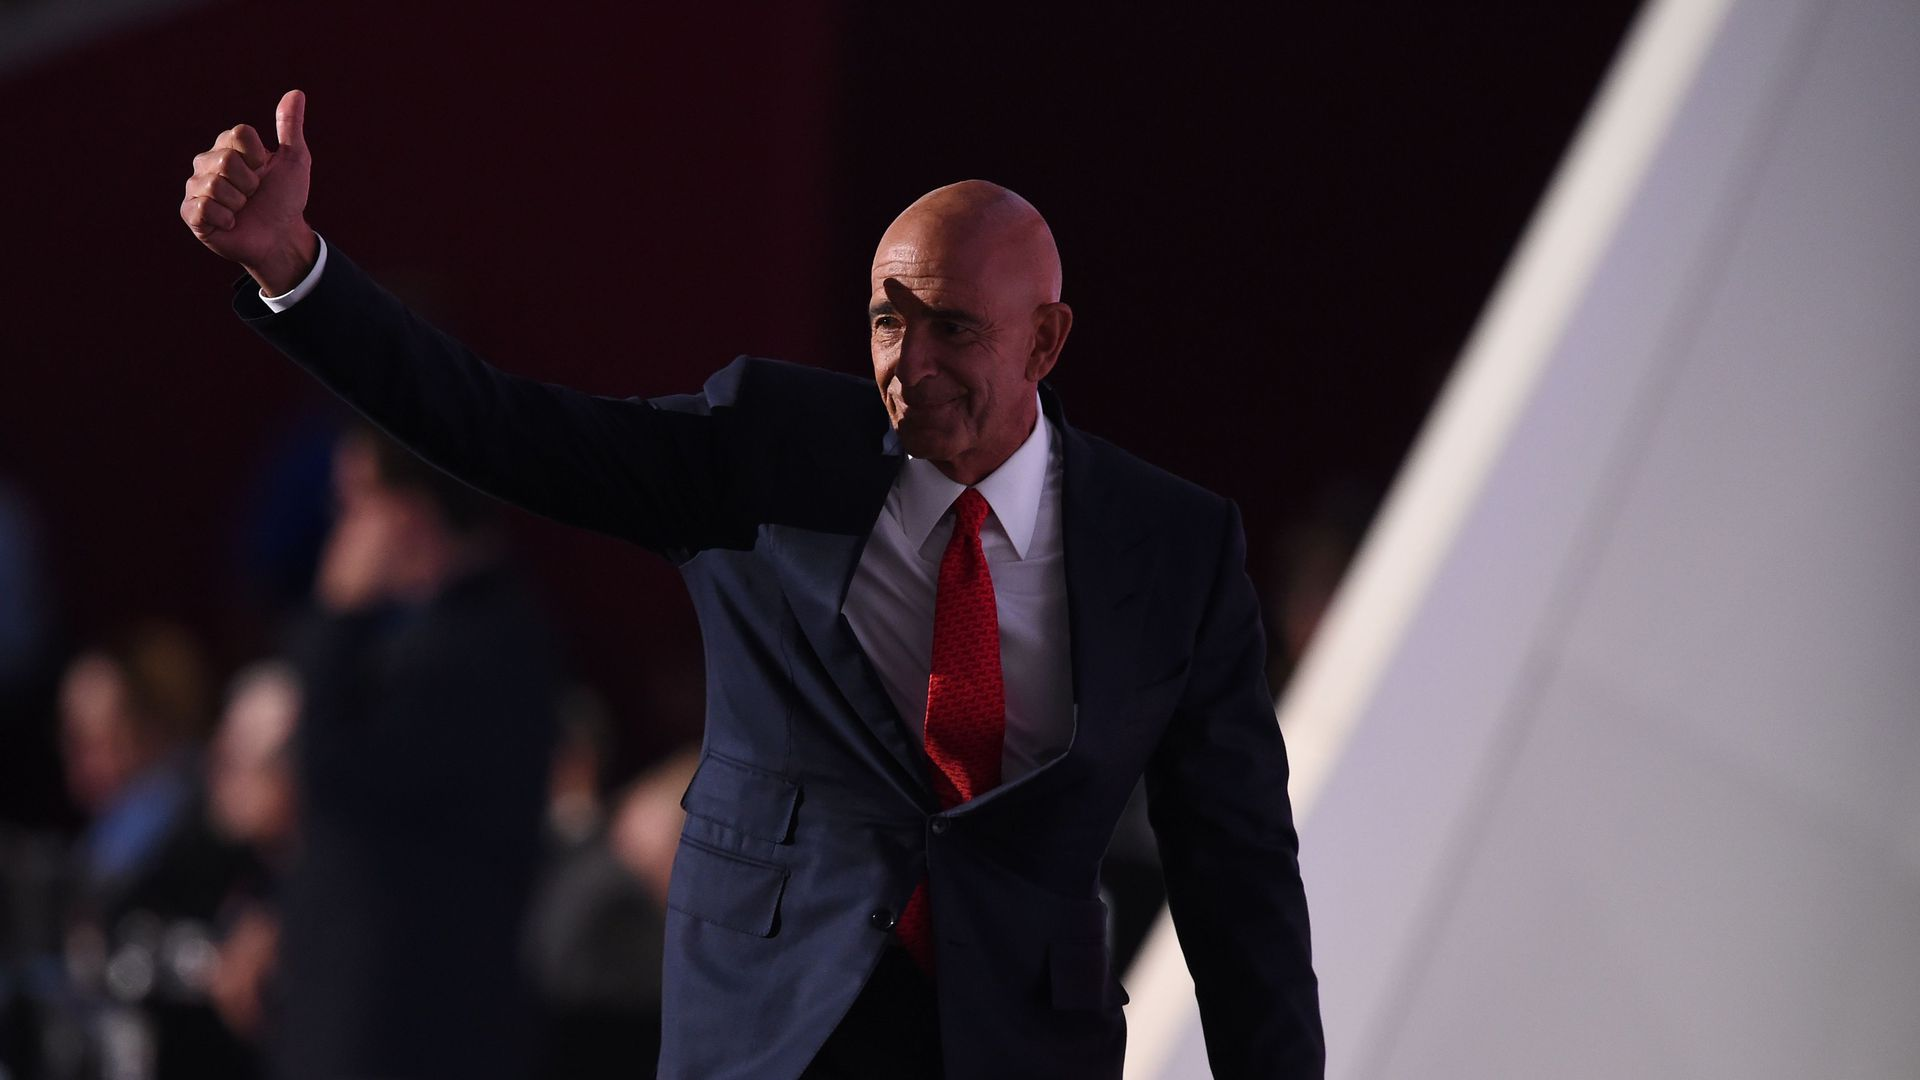 Colon Capital's Tom Barrack at the Republican National Convention in 2016.